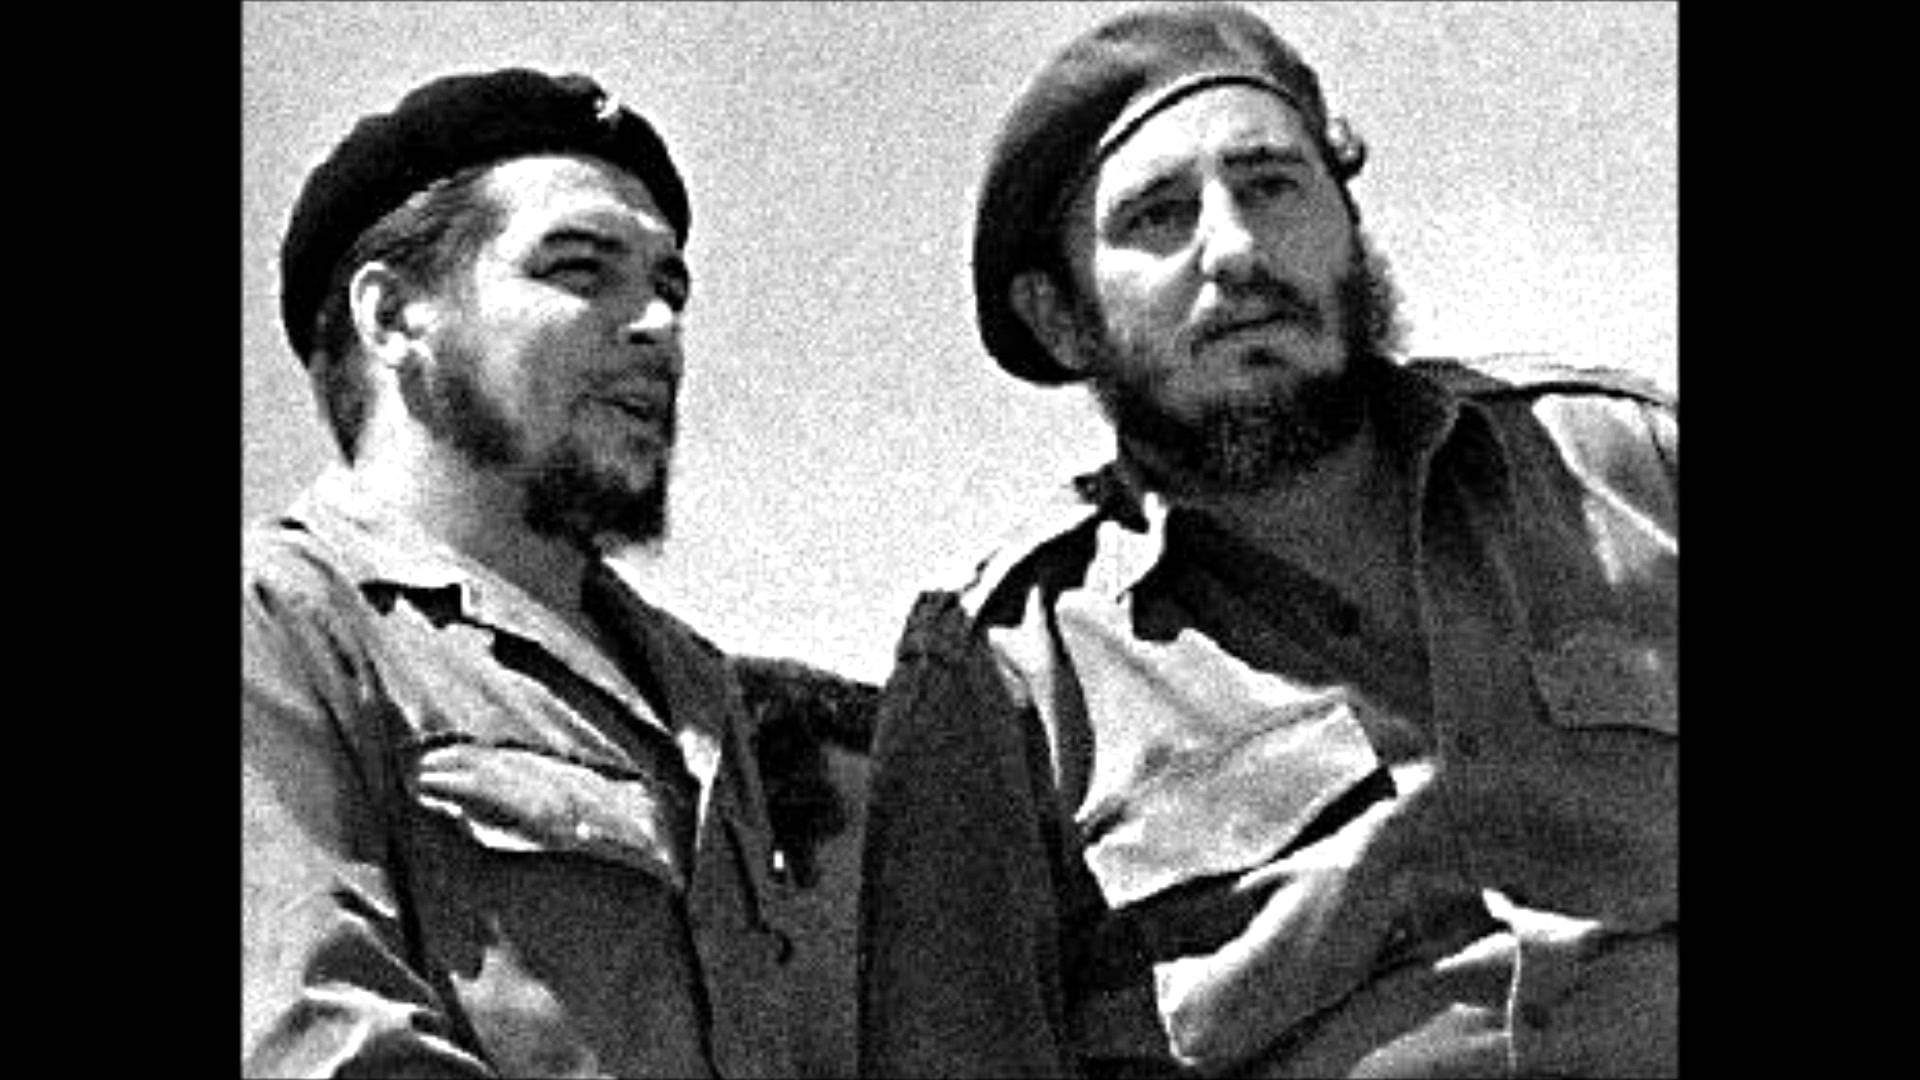 che guevara relationship with fidel